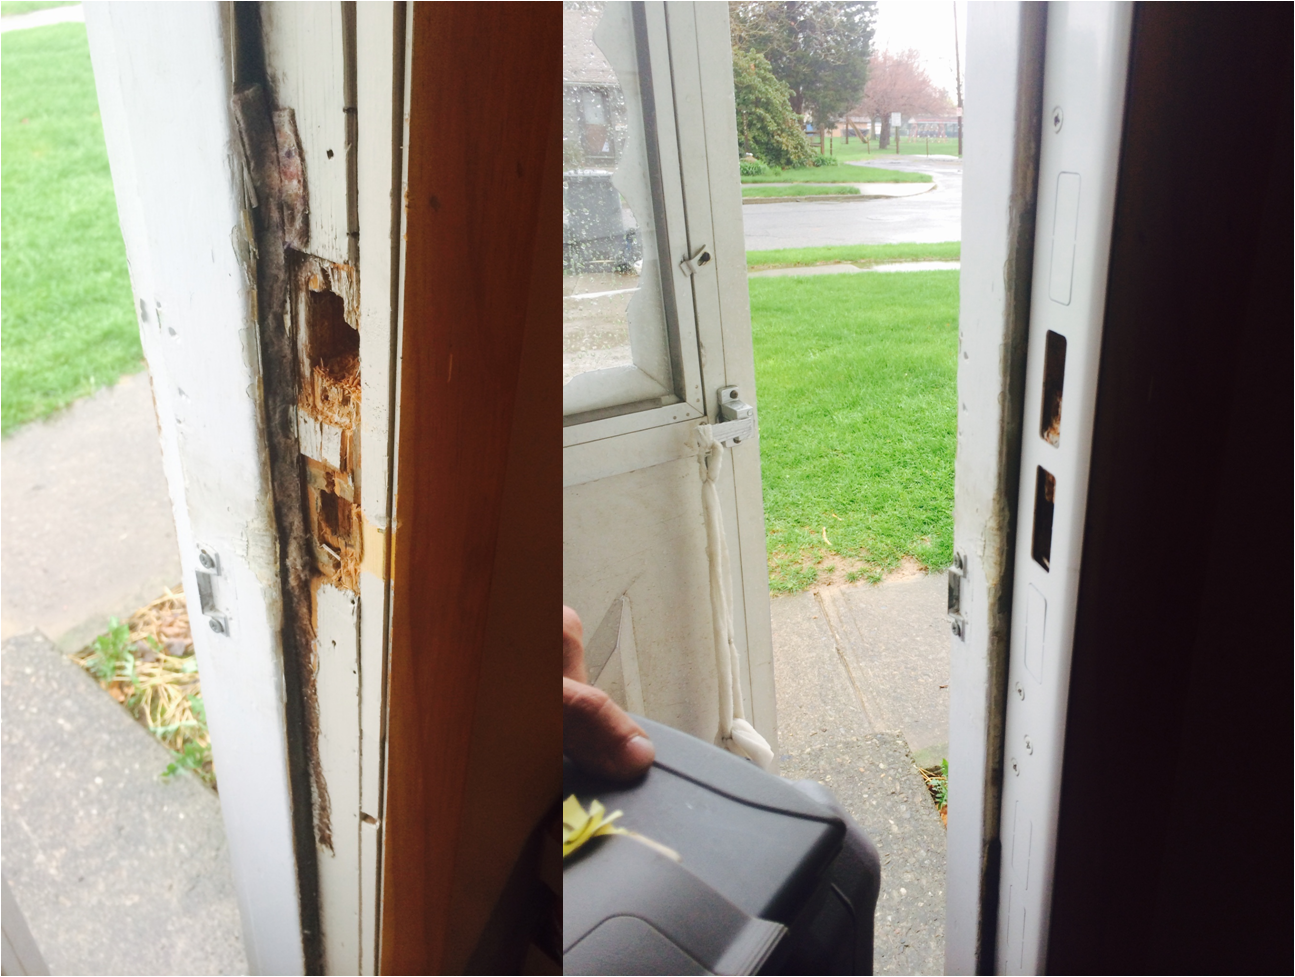 Pictured Is The Before And After For The Installation Of A Jam Jacket Jam Jackets Can Provide Home And Business Owners With An I Locksmith Security Door Frame